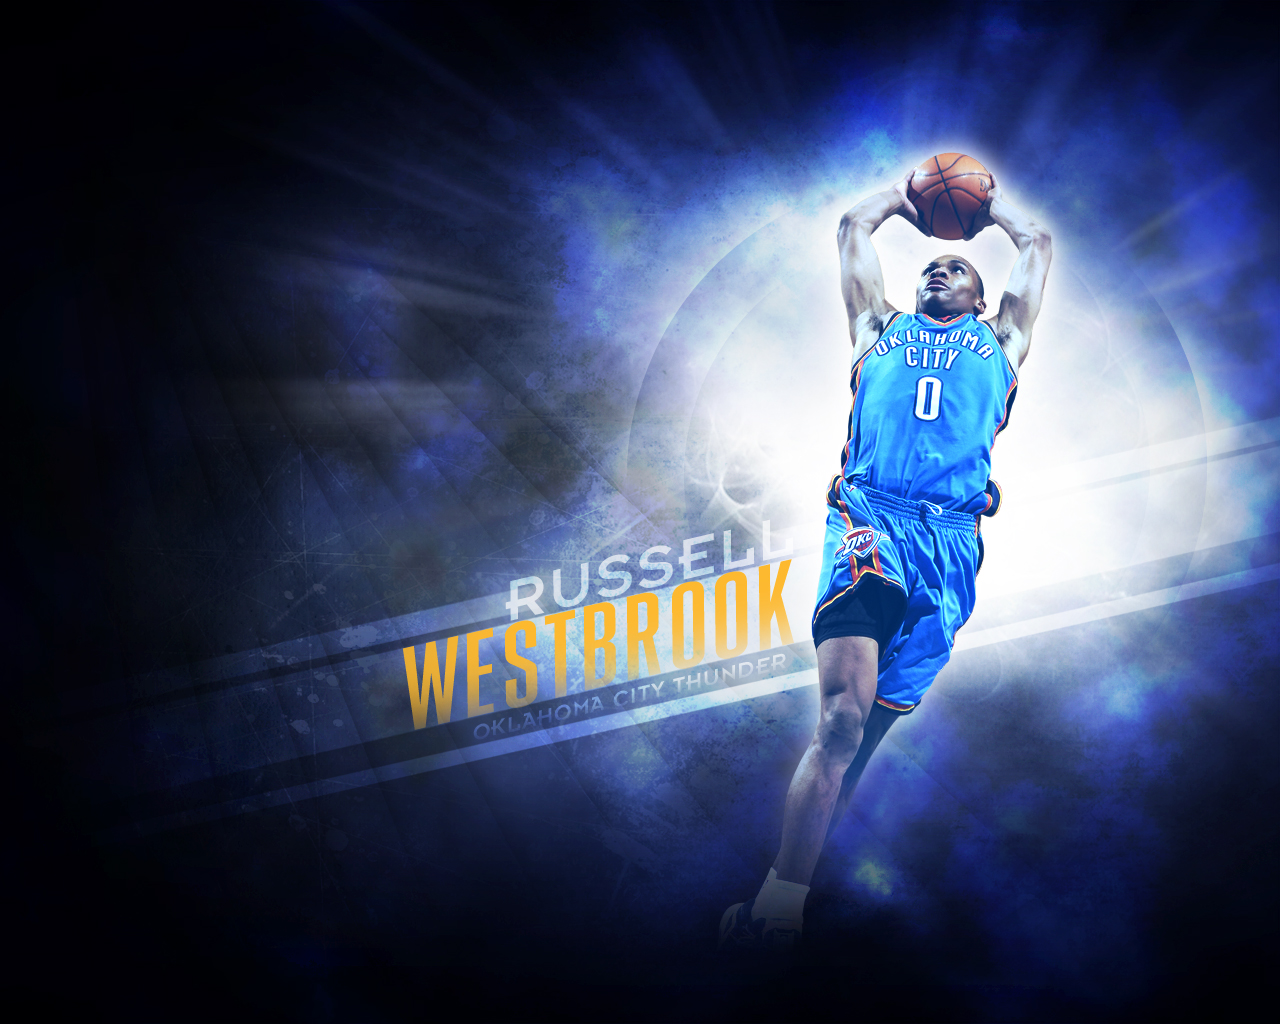 russell westbrook new hd wallpapers 2012 its all about